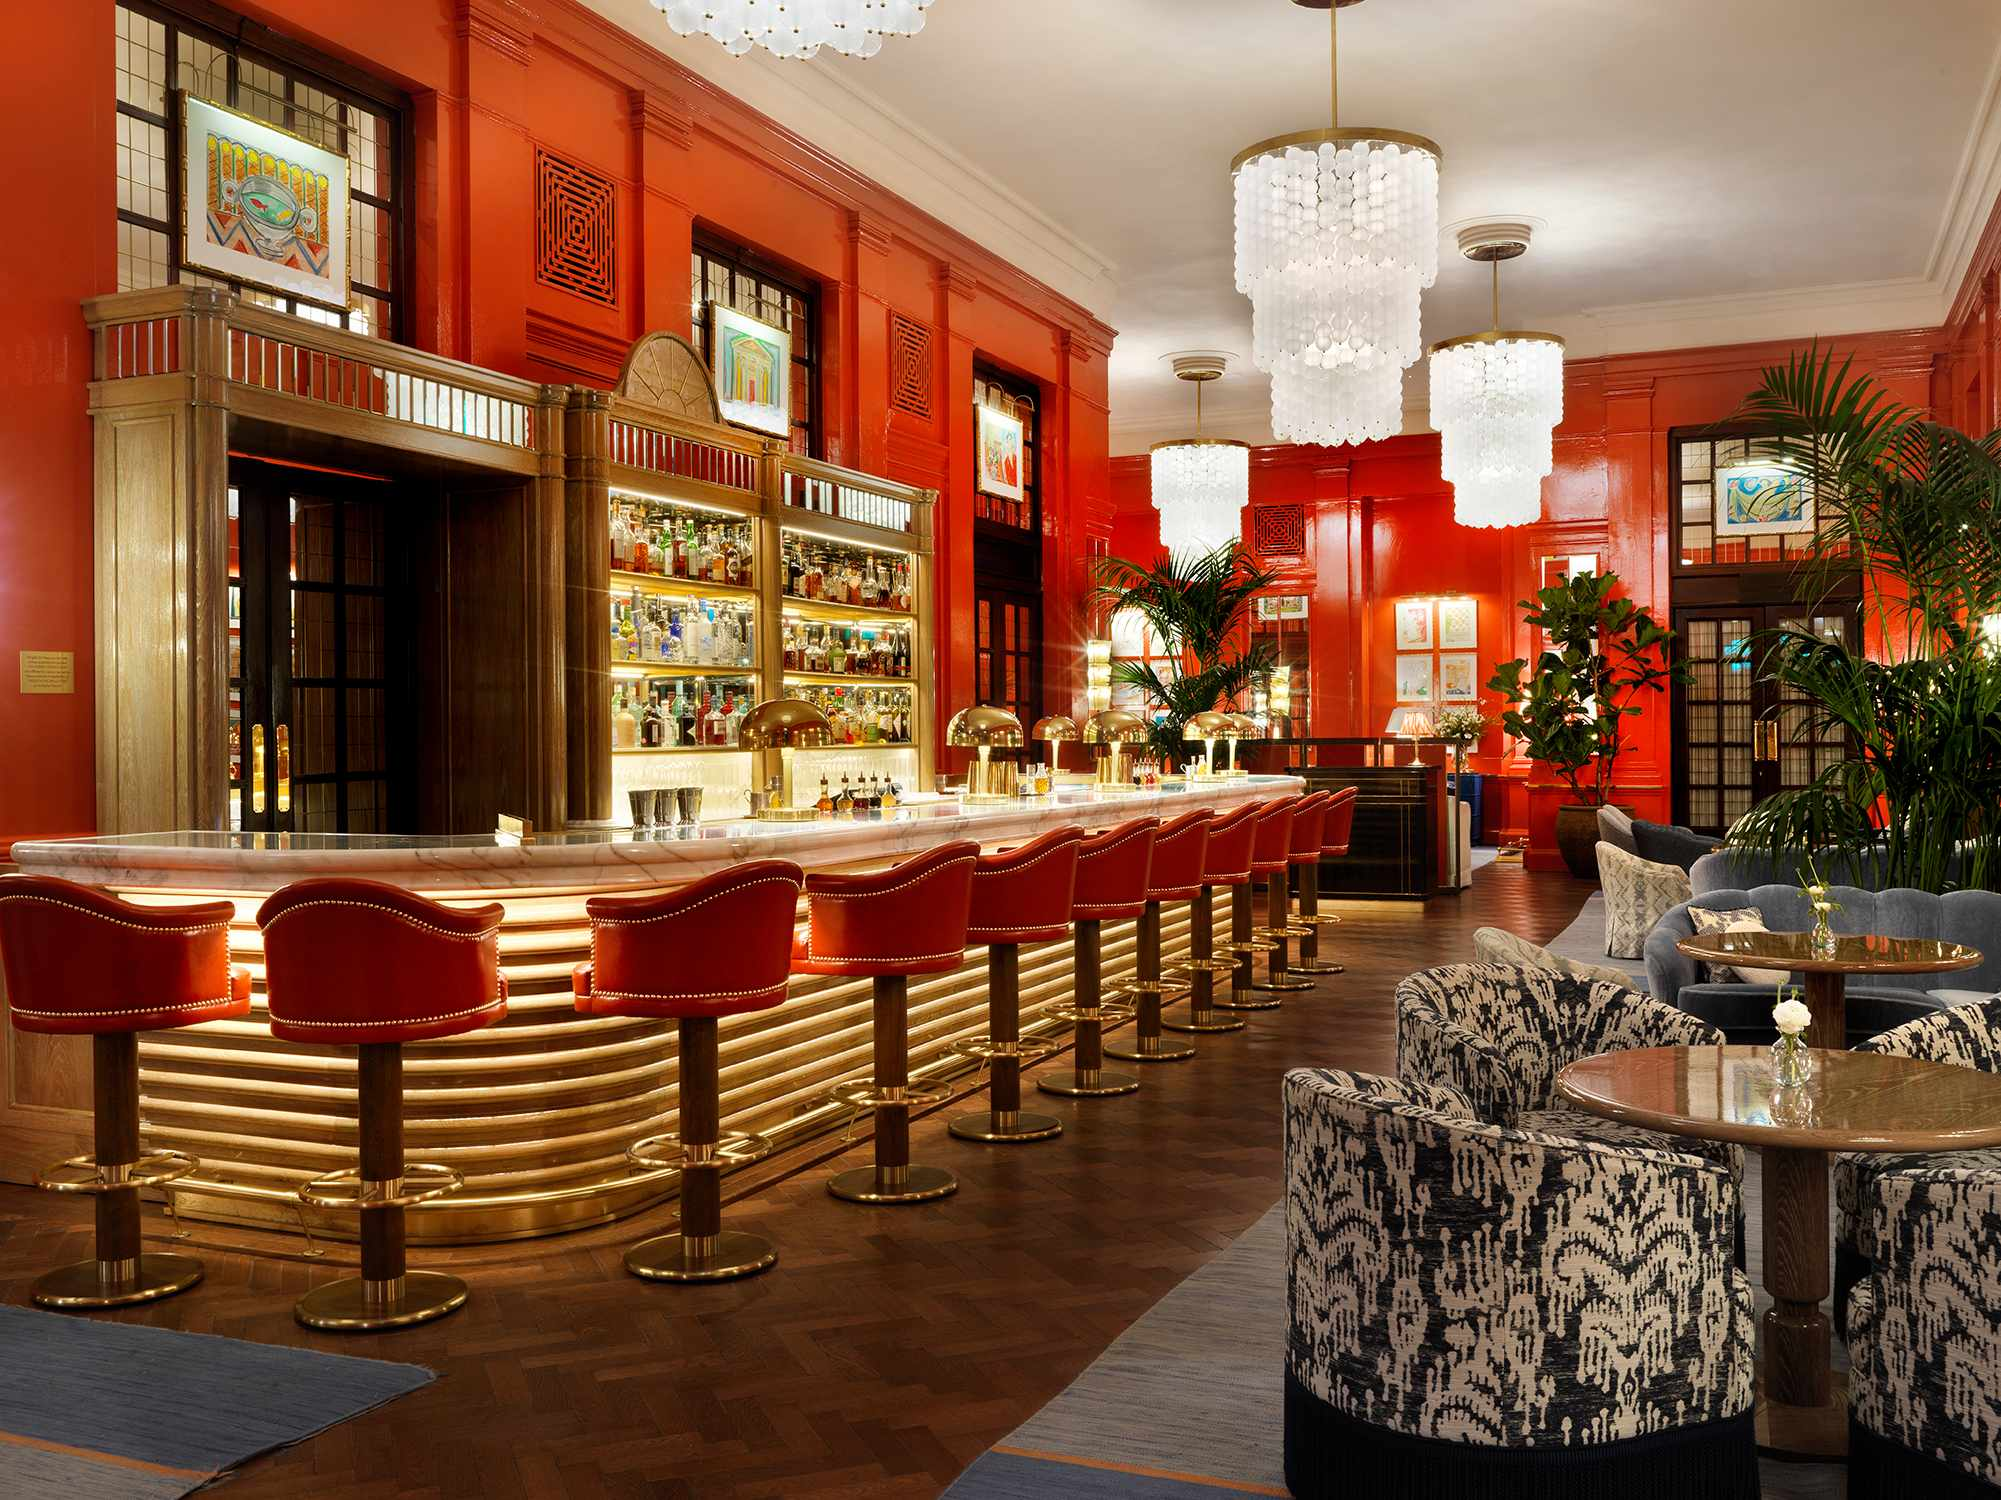 A room with red walls, a bar, tables and chairs